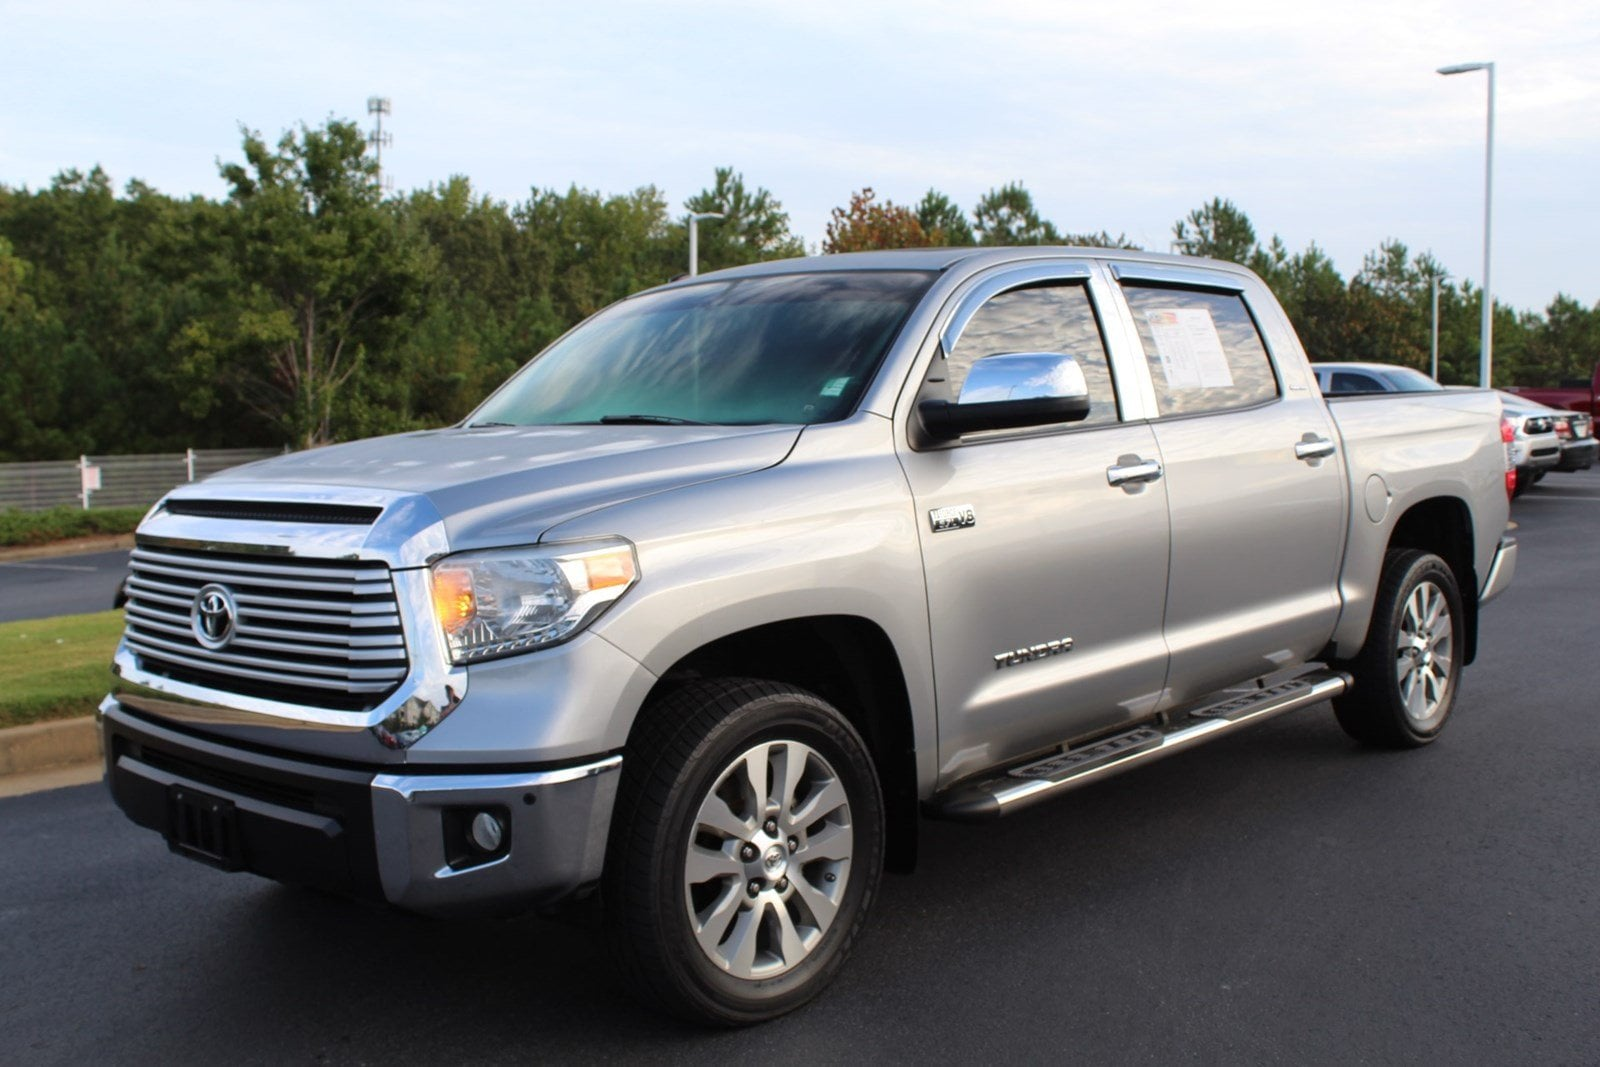 Photo 2014 Toyota Tundra 4x4 Limited 5.7L V8 FFV 26 Truck Crew Max in Columbus, GA